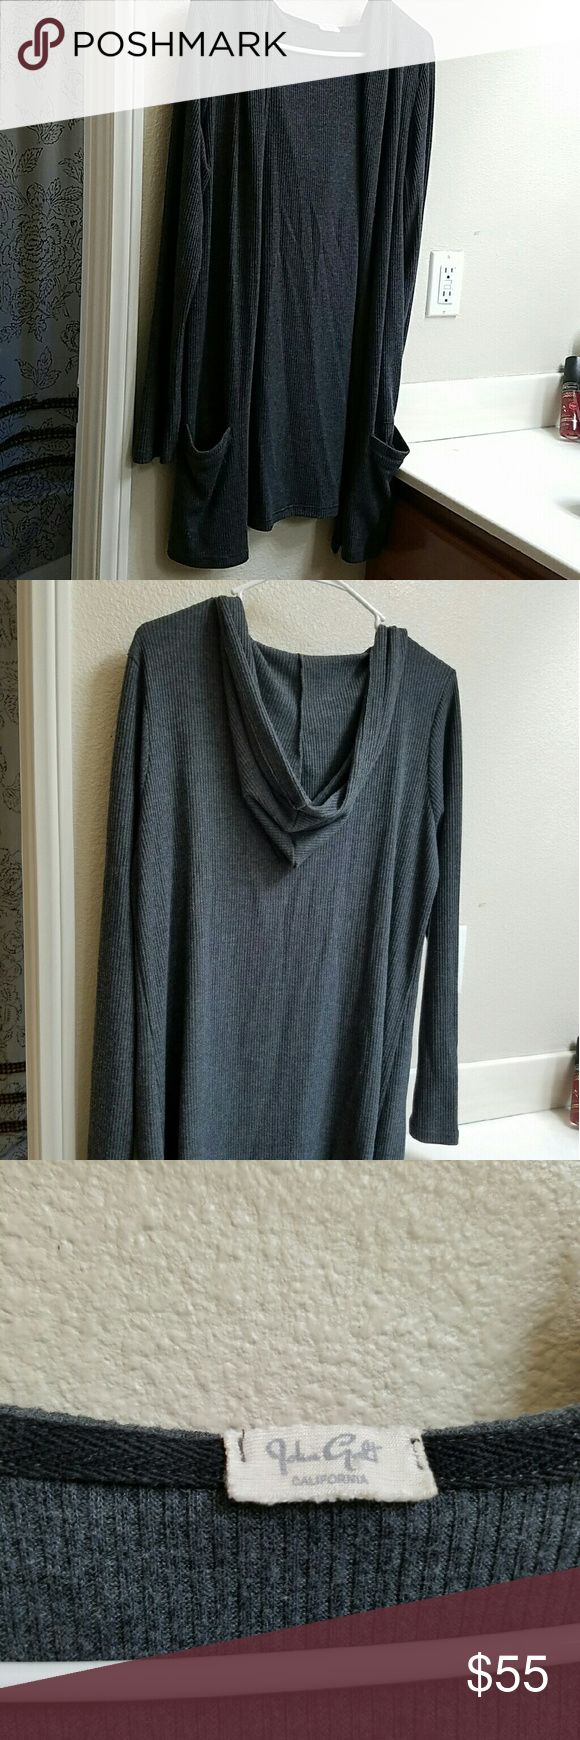 Brandy Melville cardigan Cute thin grey cardigan! Only wore once! Brandy Melville Sweaters Cardigans